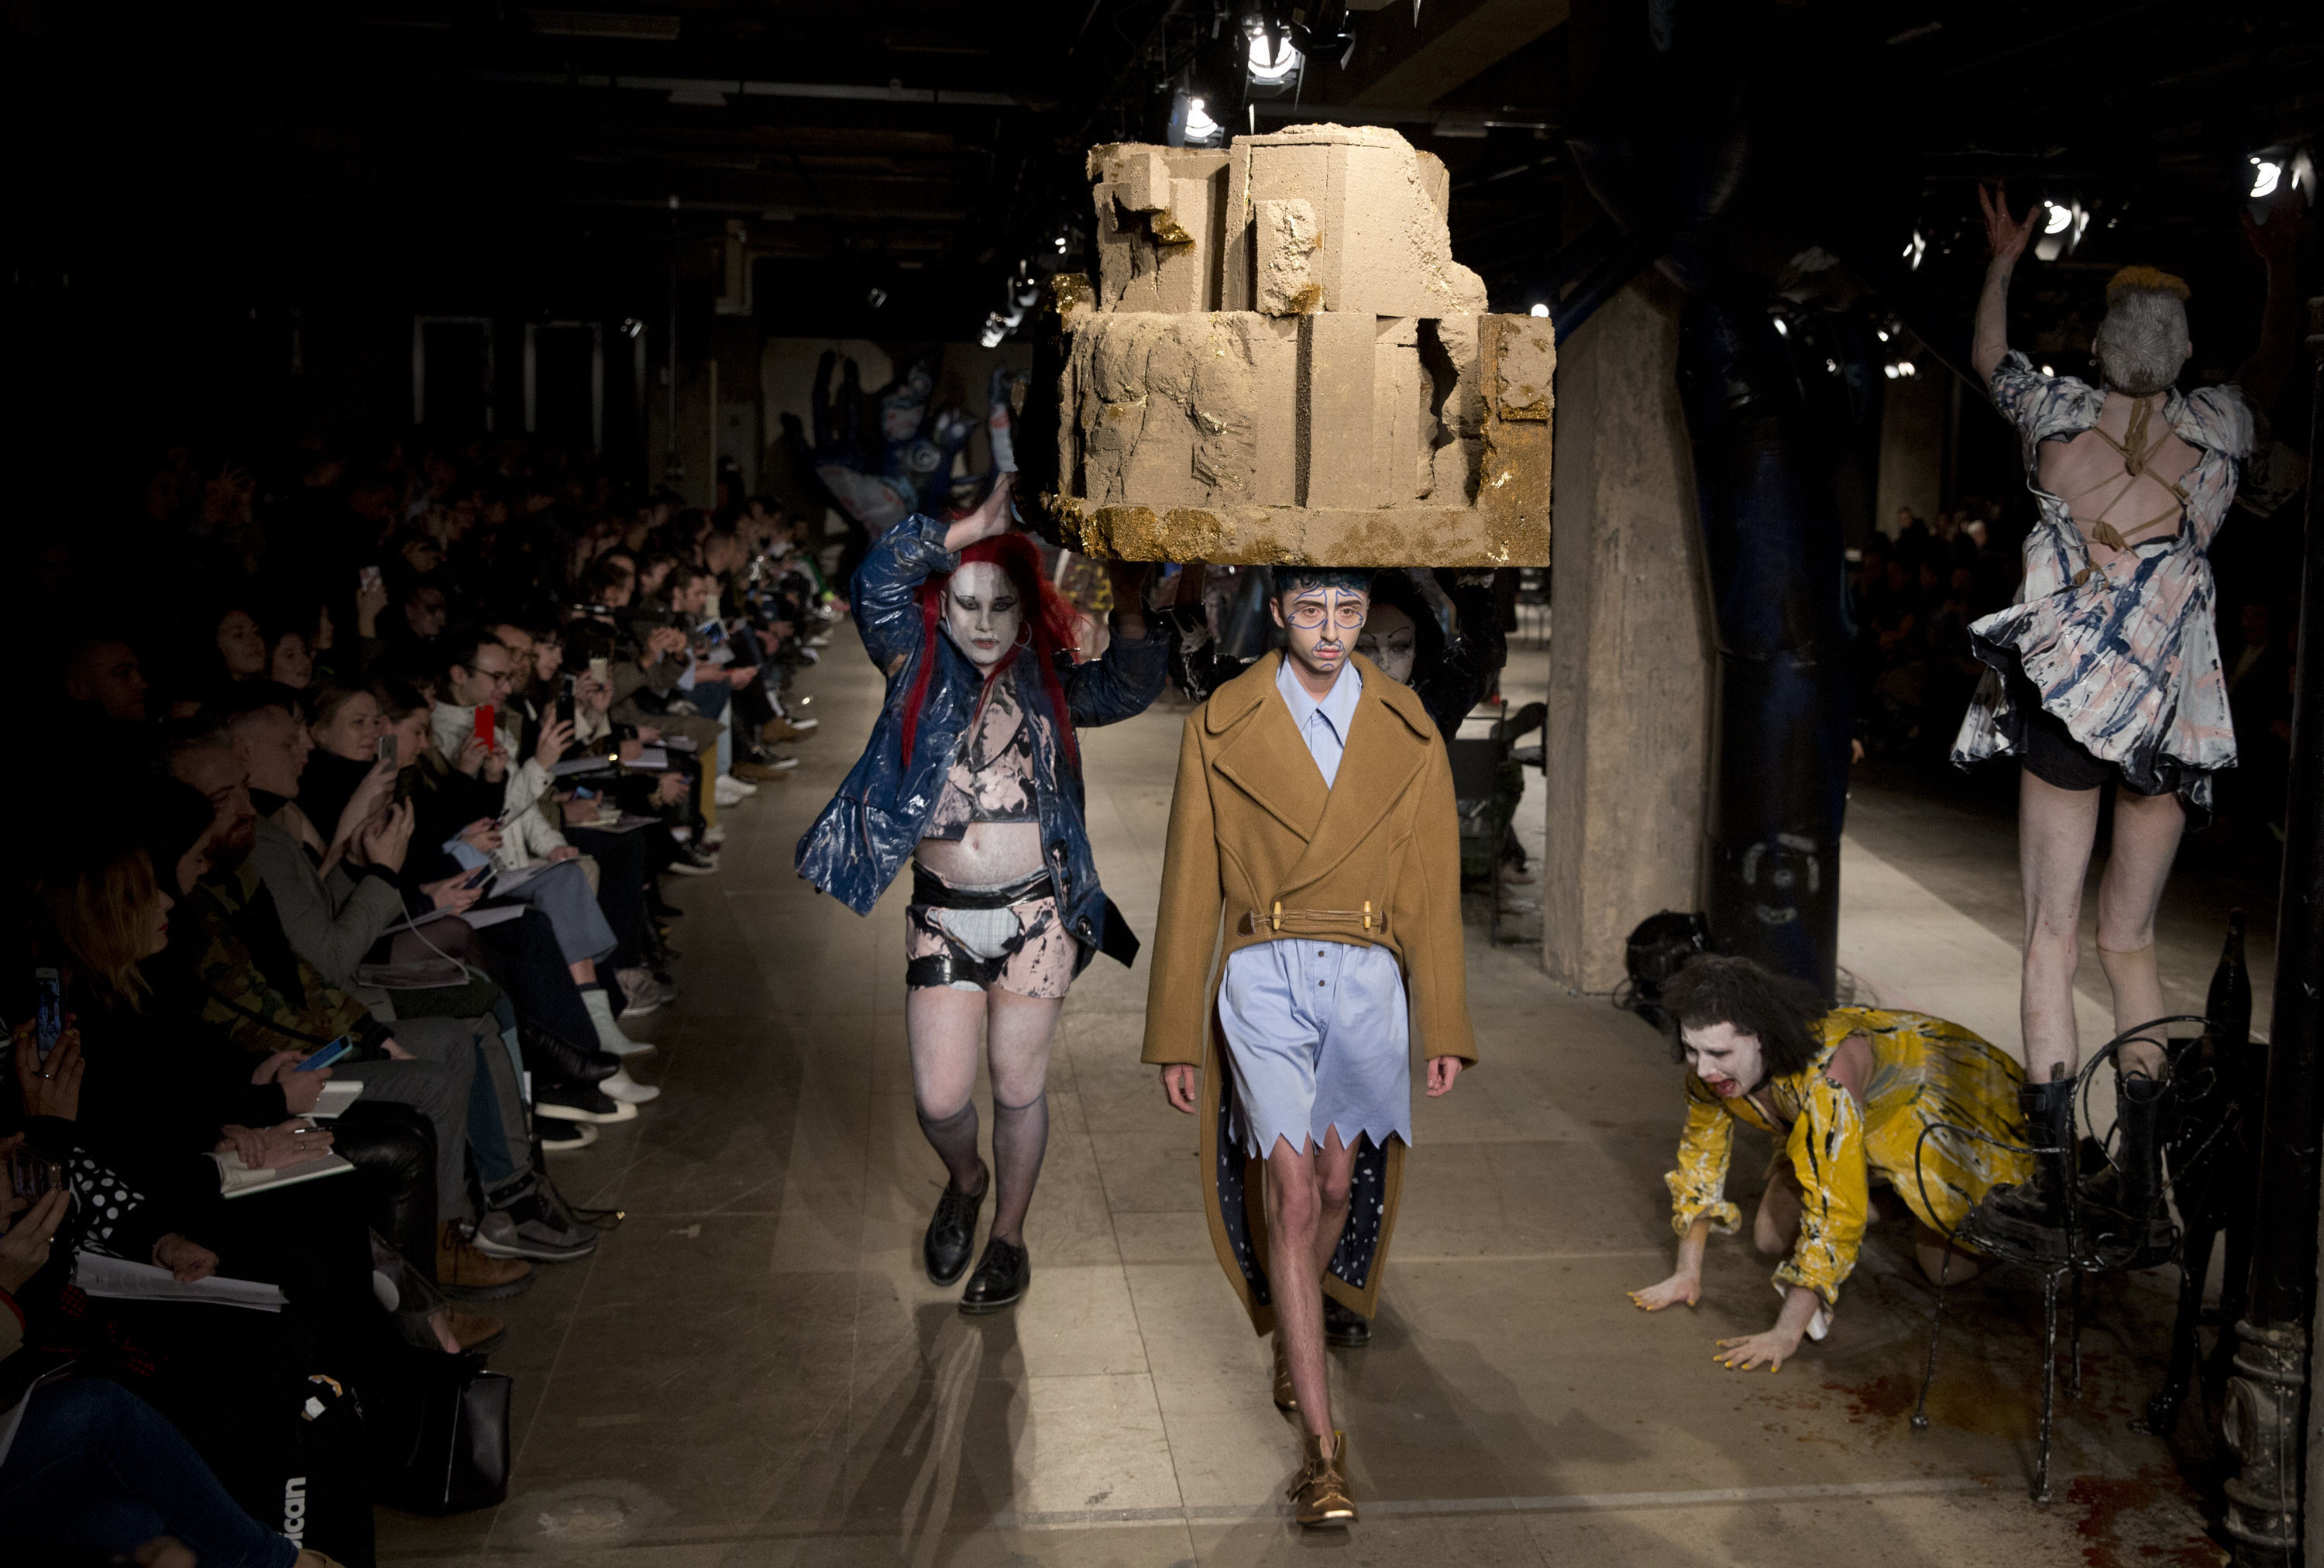 Models on the catwalk during the Charles Jeffrey LOVERBOY London Fashion Week Men's AW18 show, held at Topman Show Space, London.